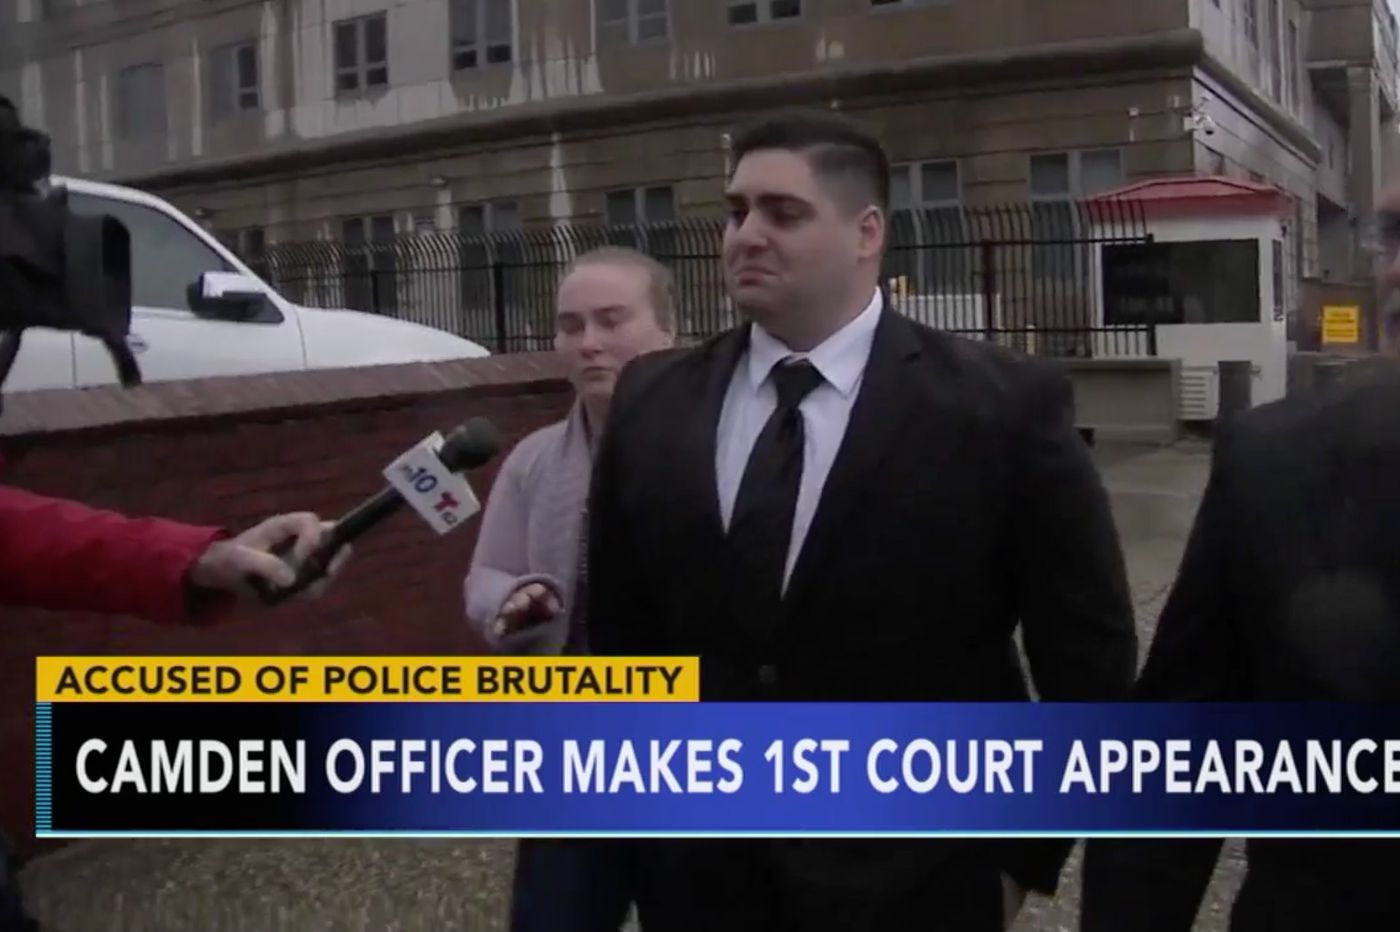 Mistrial declared on civil rights charge against Camden police officer accused of punching suspect 12 times